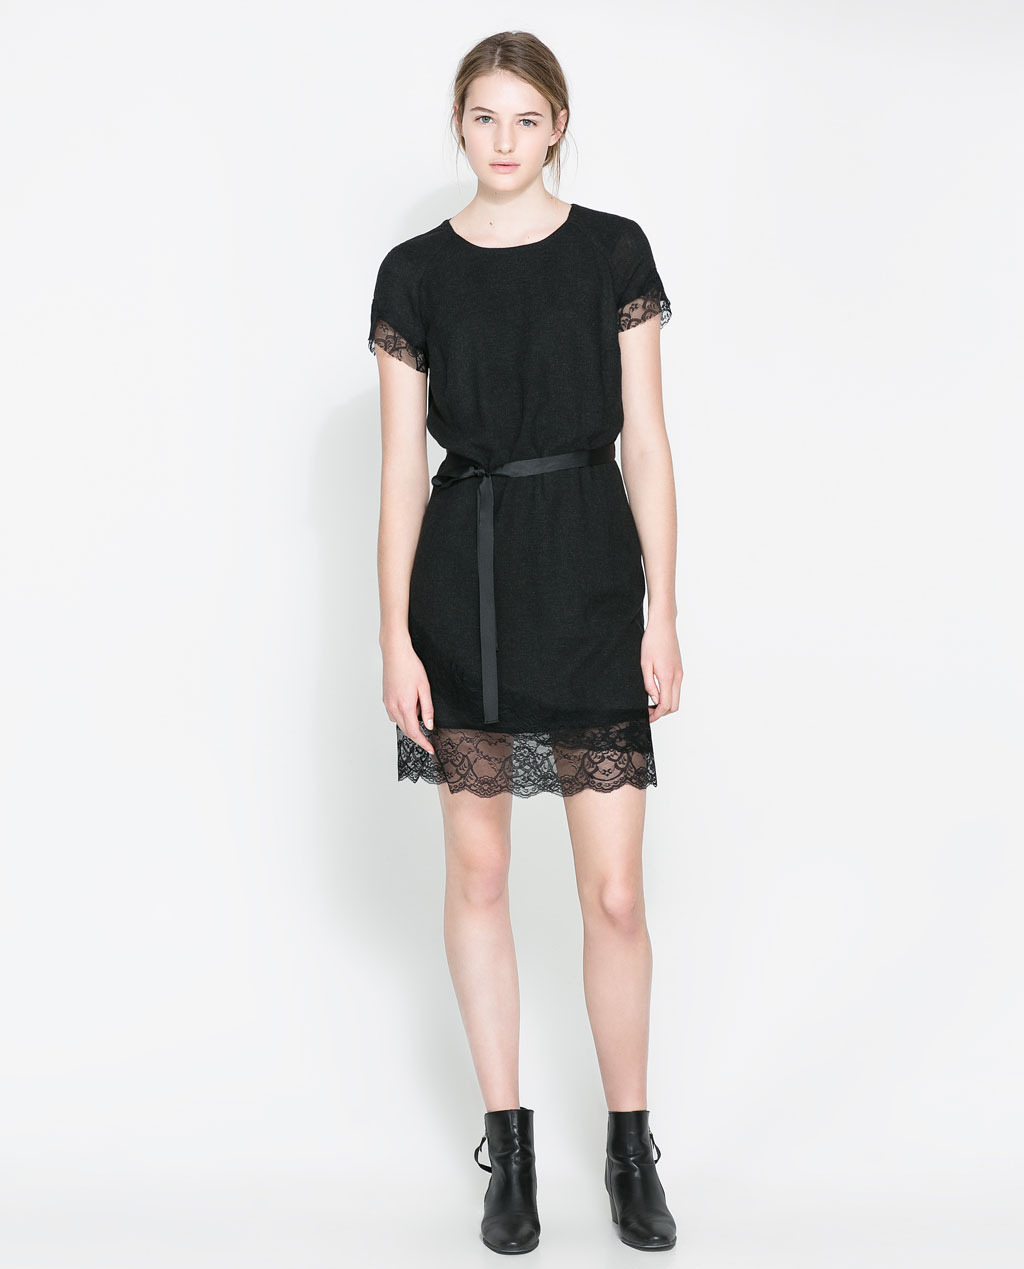 Woollen Dress With Lace Trim - style: shift; length: mid thigh; neckline: round neck; fit: fitted at waist; pattern: plain; waist detail: belted waist/tie at waist/drawstring; predominant colour: black; secondary colour: black; occasions: casual, evening, occasion, creative work; back detail: keyhole/peephole detail at back; sleeve length: short sleeve; sleeve style: standard; texture group: silky - light; pattern type: fabric; fibres: viscose/rayon - mix; embellishment: lace; season: a/w 2013; wardrobe: highlight; embellishment location: hem, sleeve/cuff